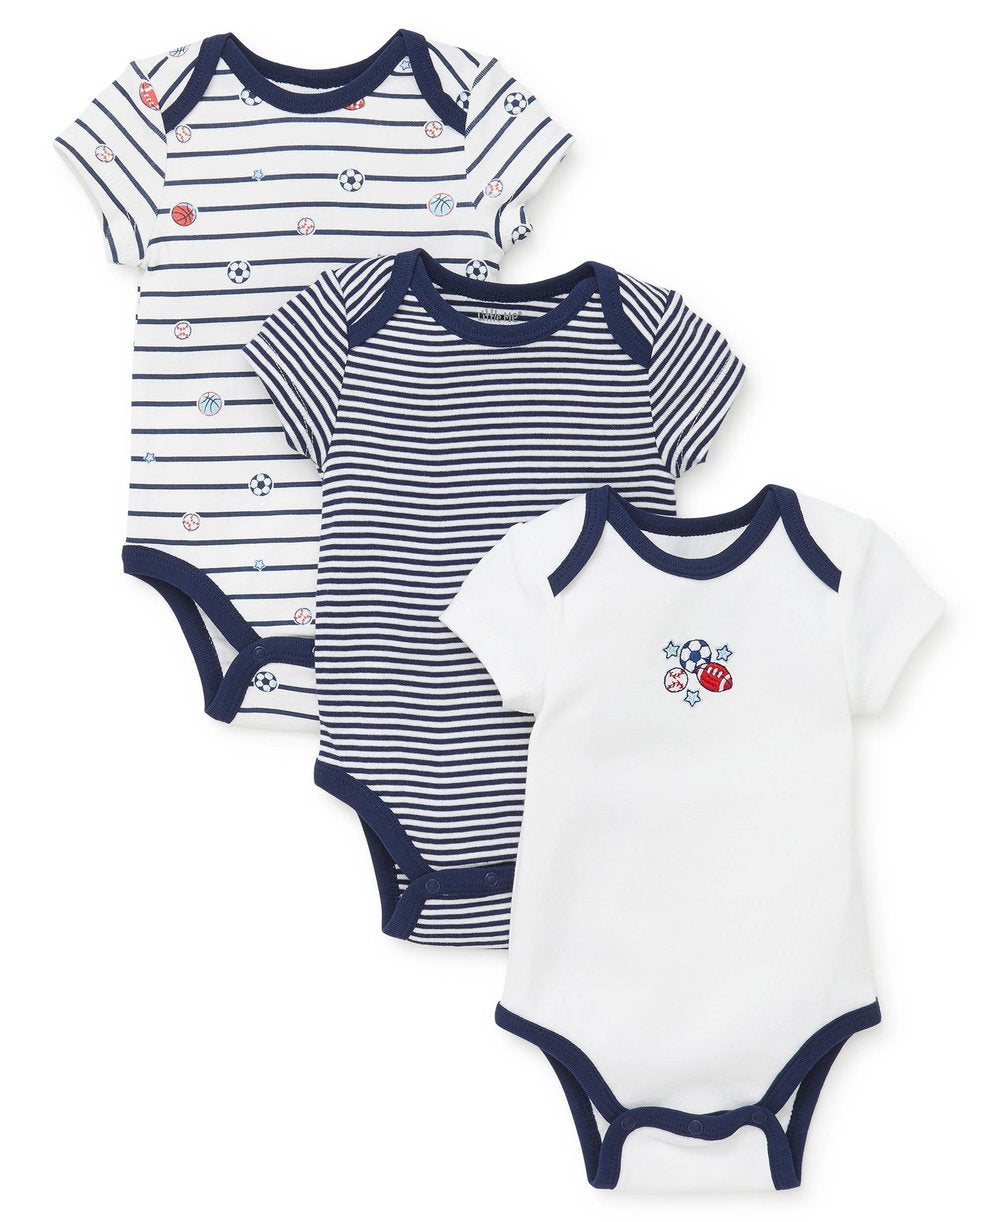 Sports Star 3 pack Bodysuits